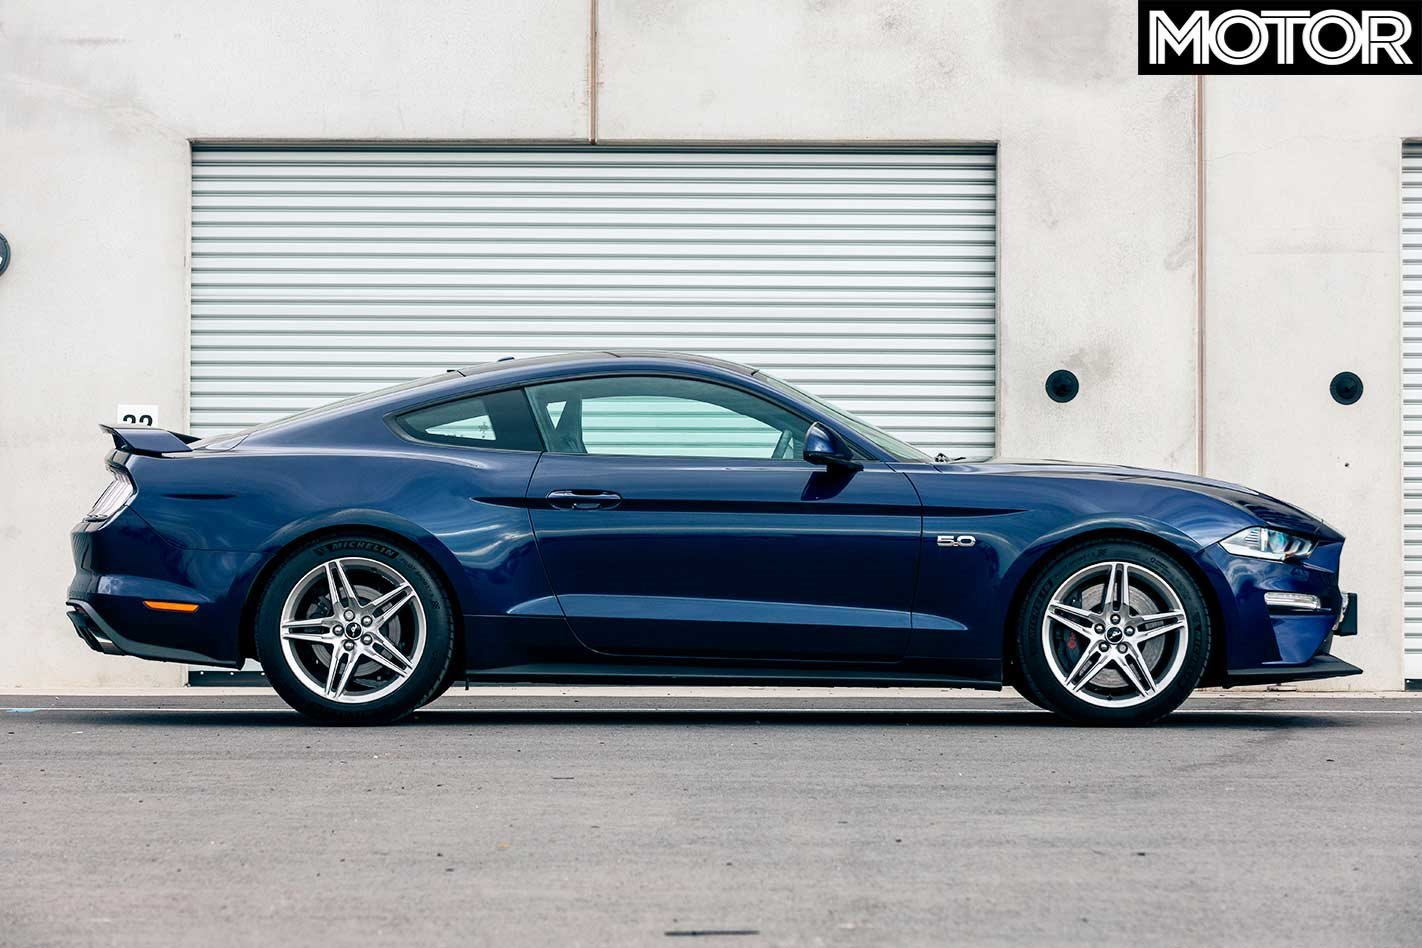 2019 Ford Mustang GT auto overheating issues on track